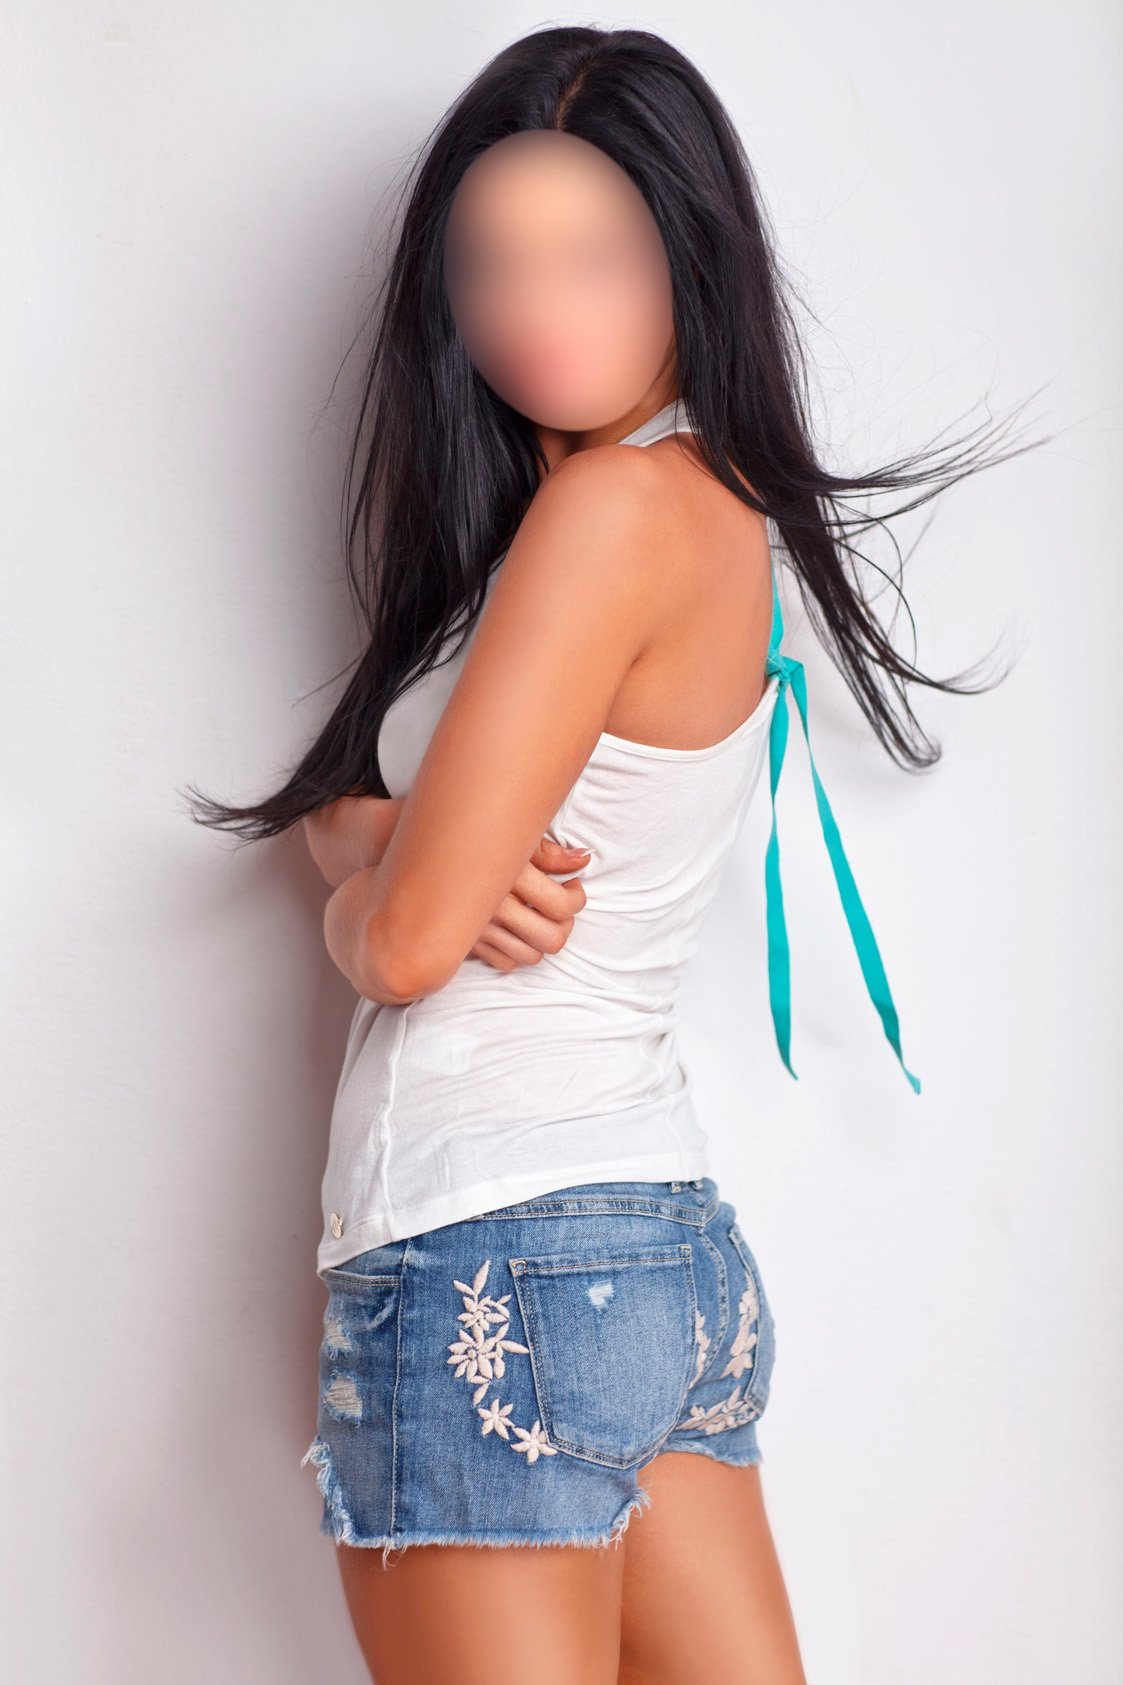 Independent polish escort elite escort